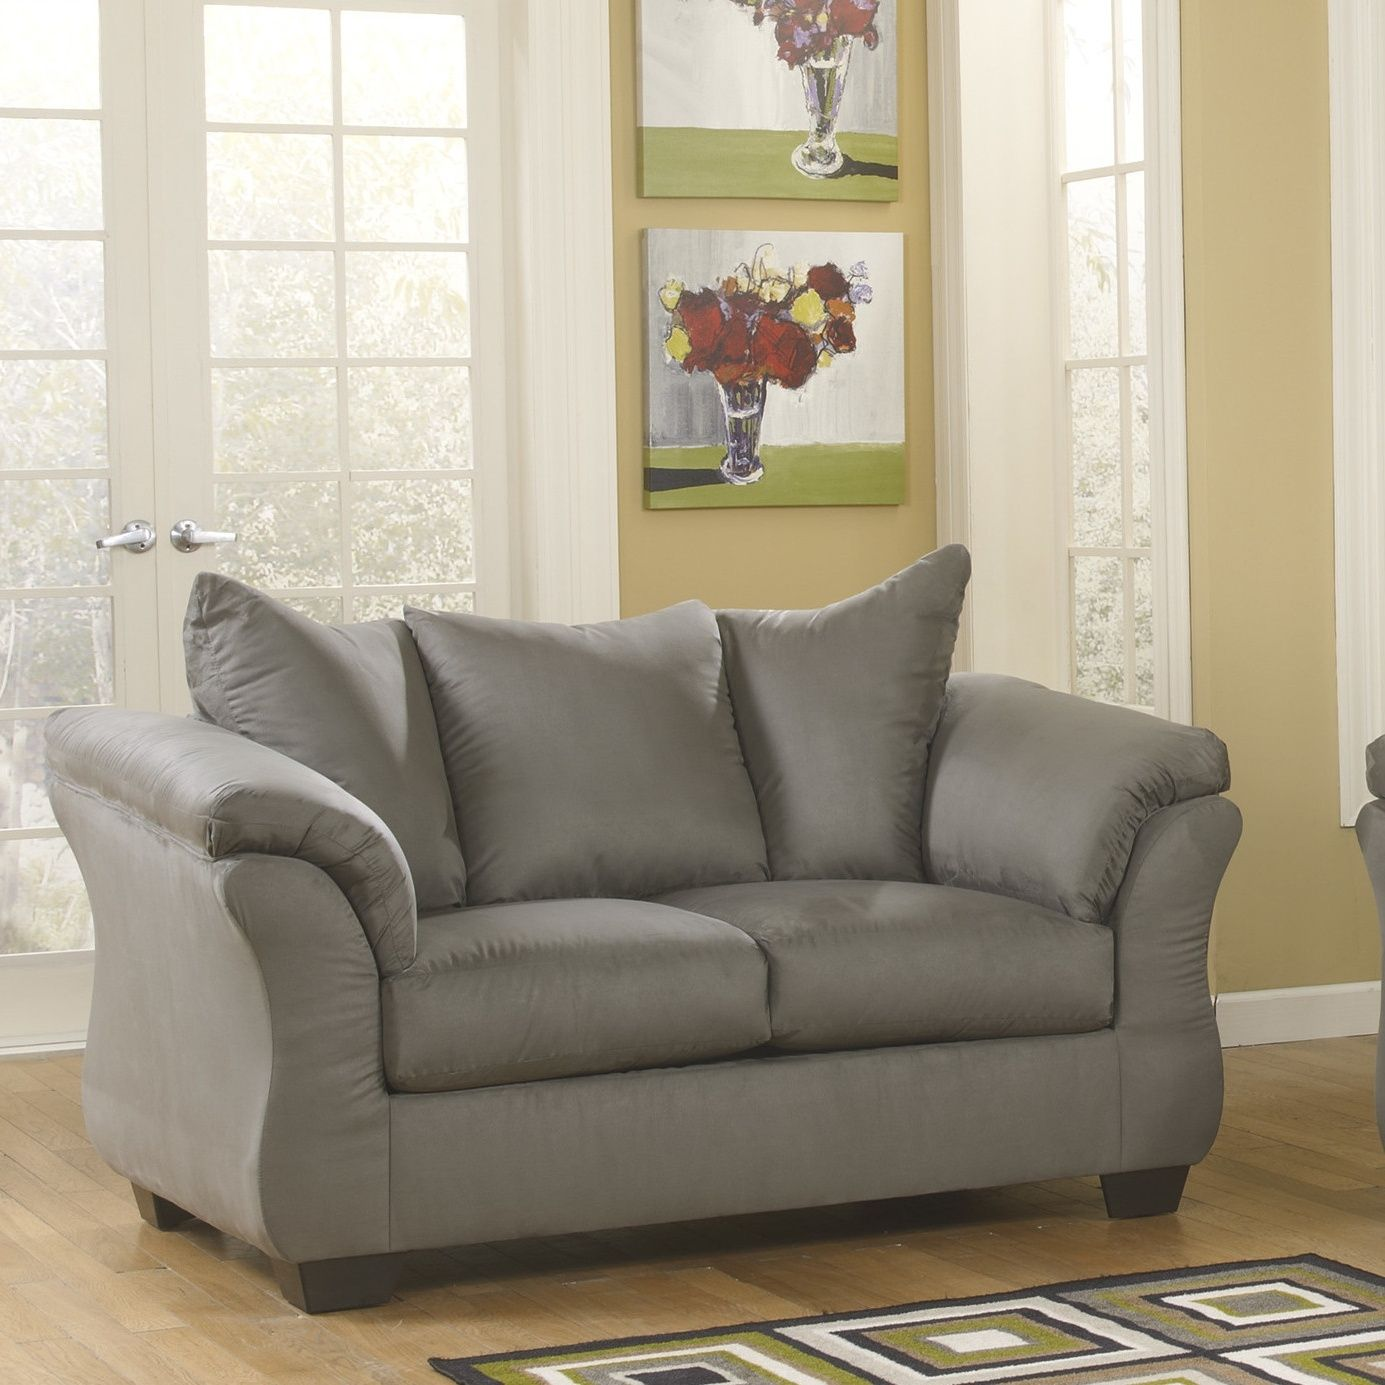 Best Cheap Couches For Sale Under 100 Home Design In 2019 400 x 300